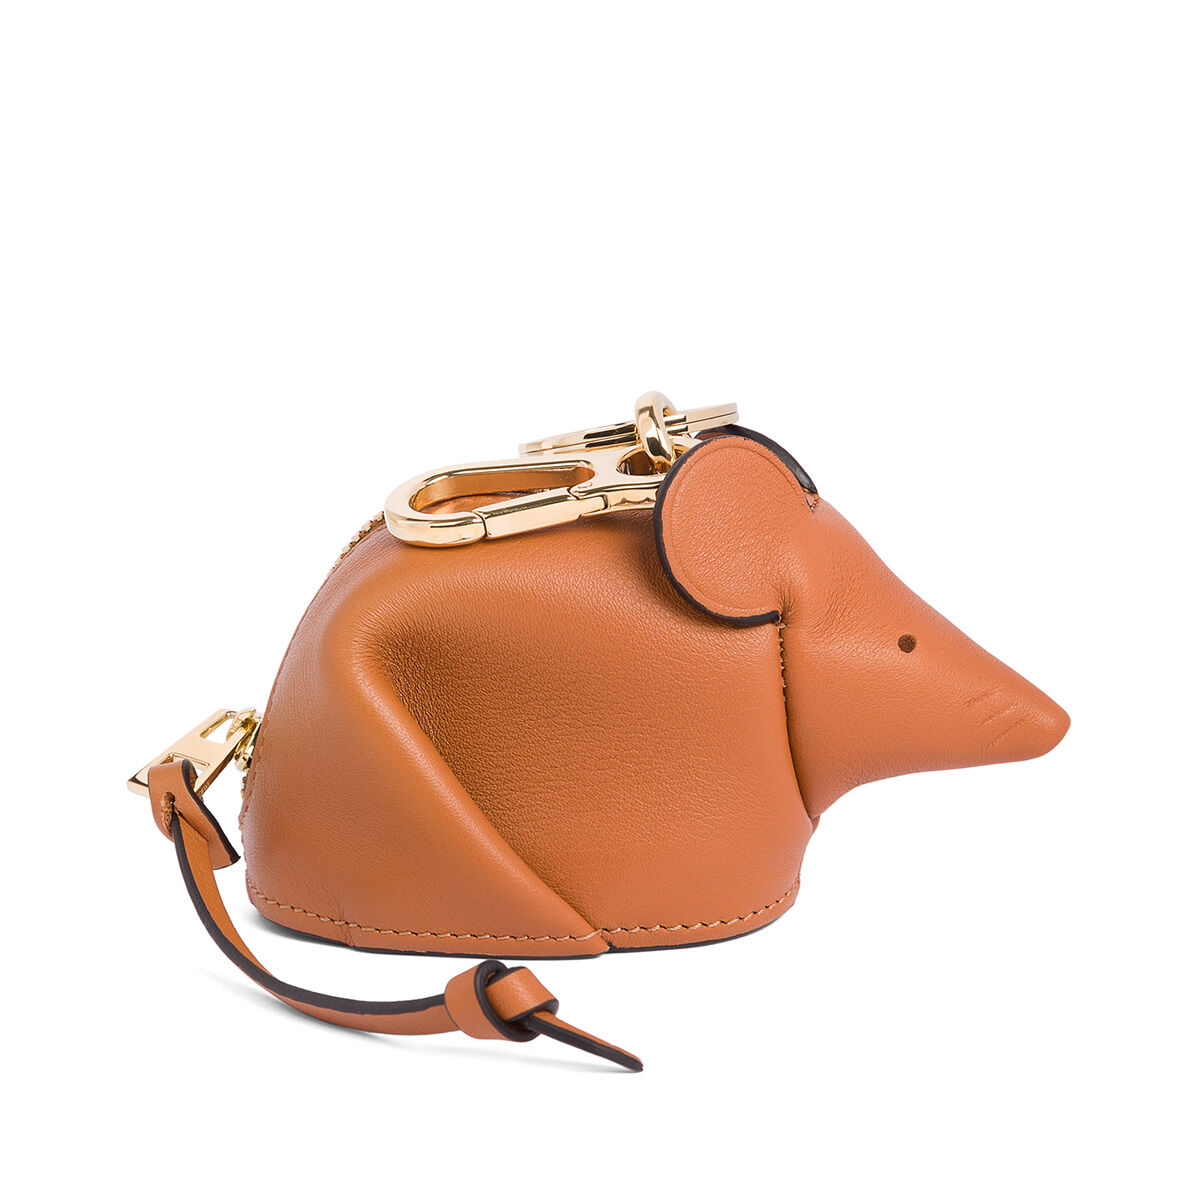 Loewe MOUSE LEATHER COIN PURSE fSrfpEZR